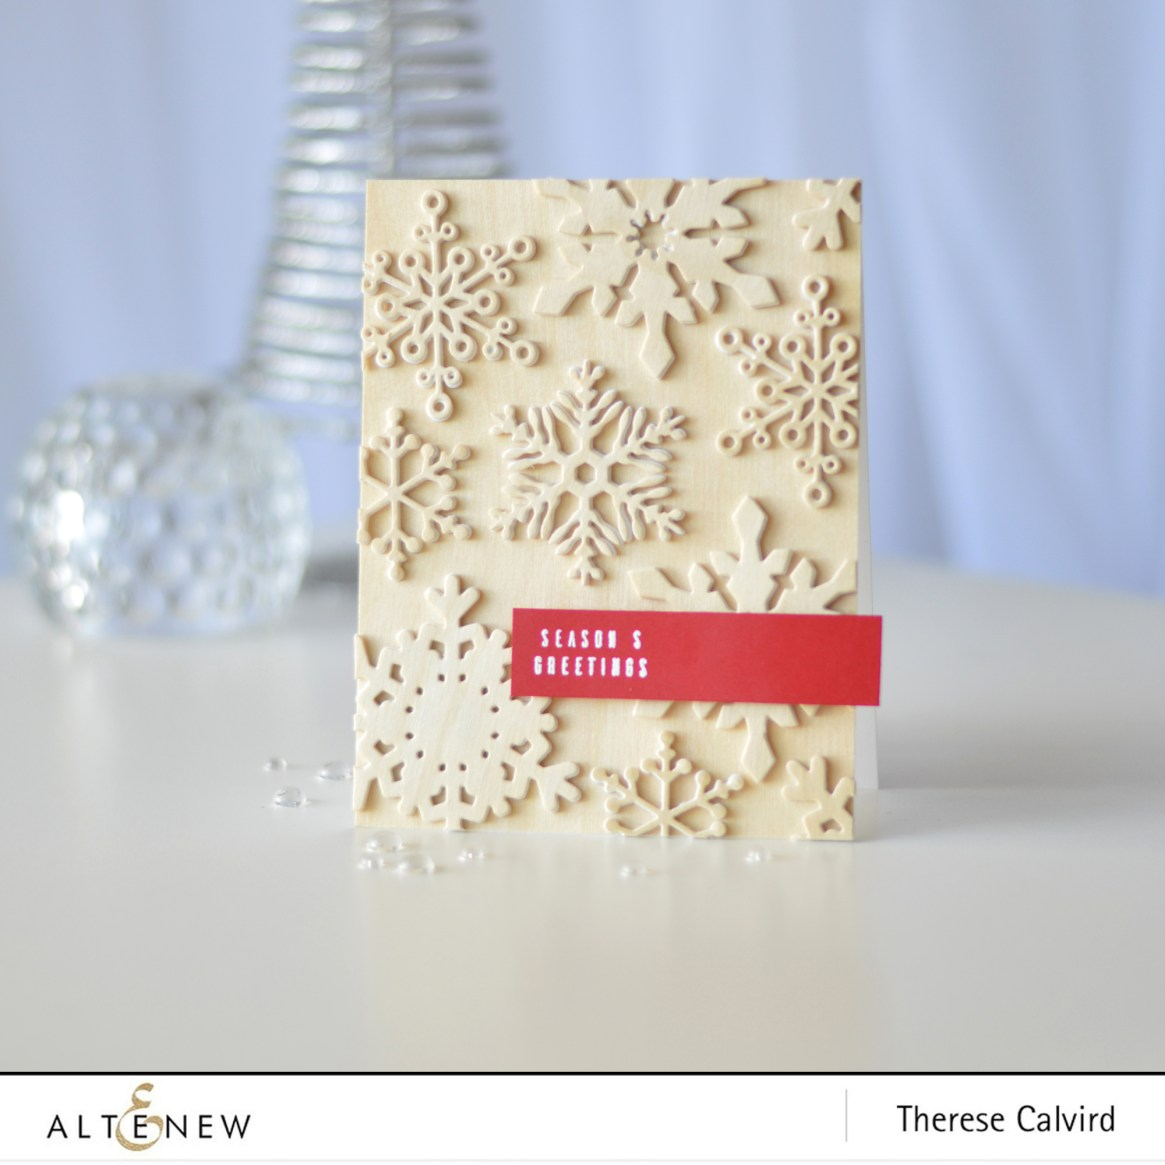 Altenew - Layered Snowflake Die - Festive Poinsettia - Therese Calvird (card video) (1) copy